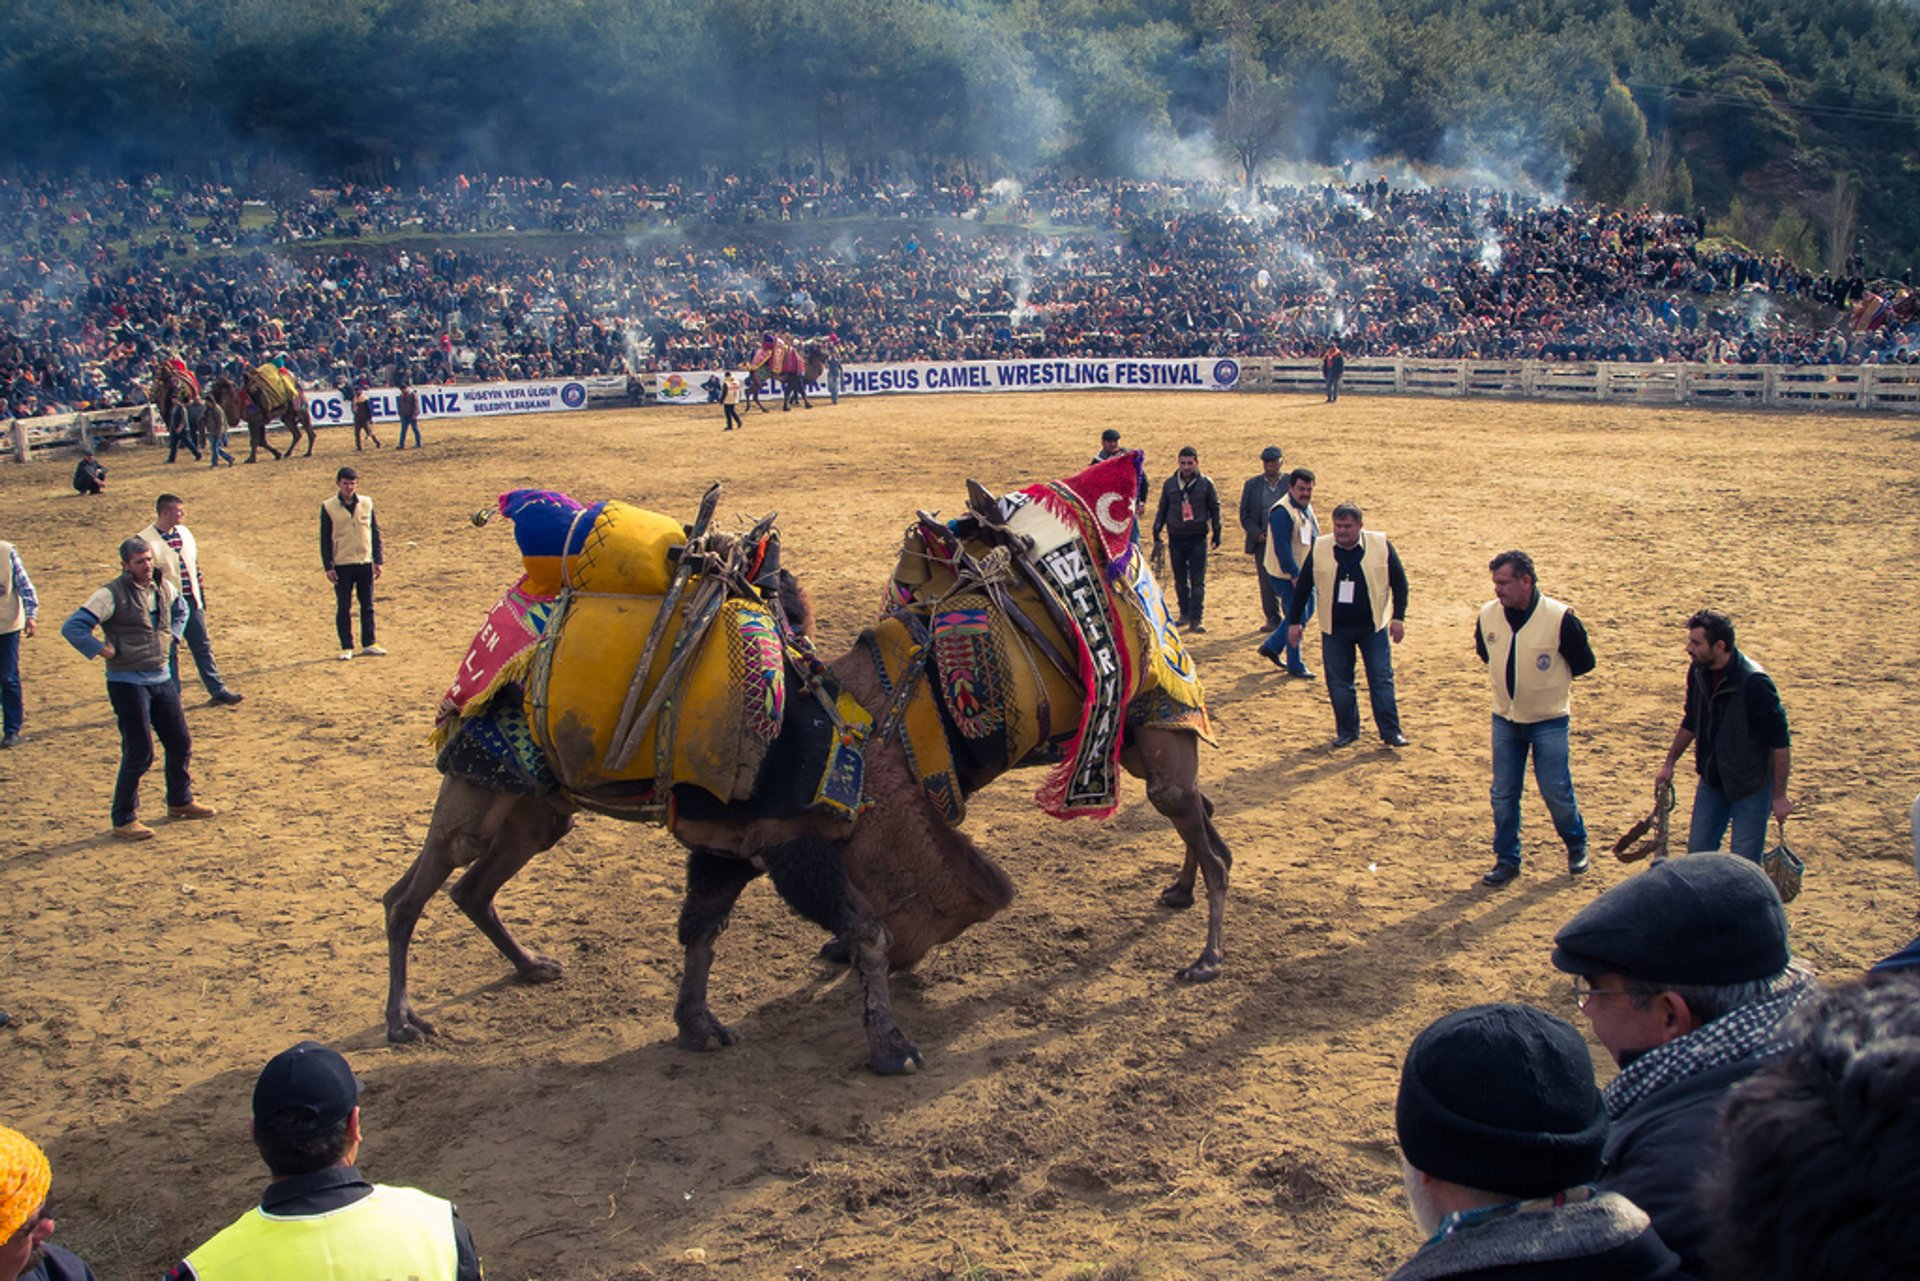 Camel Wrestling in Turkey 2020 - Best Time